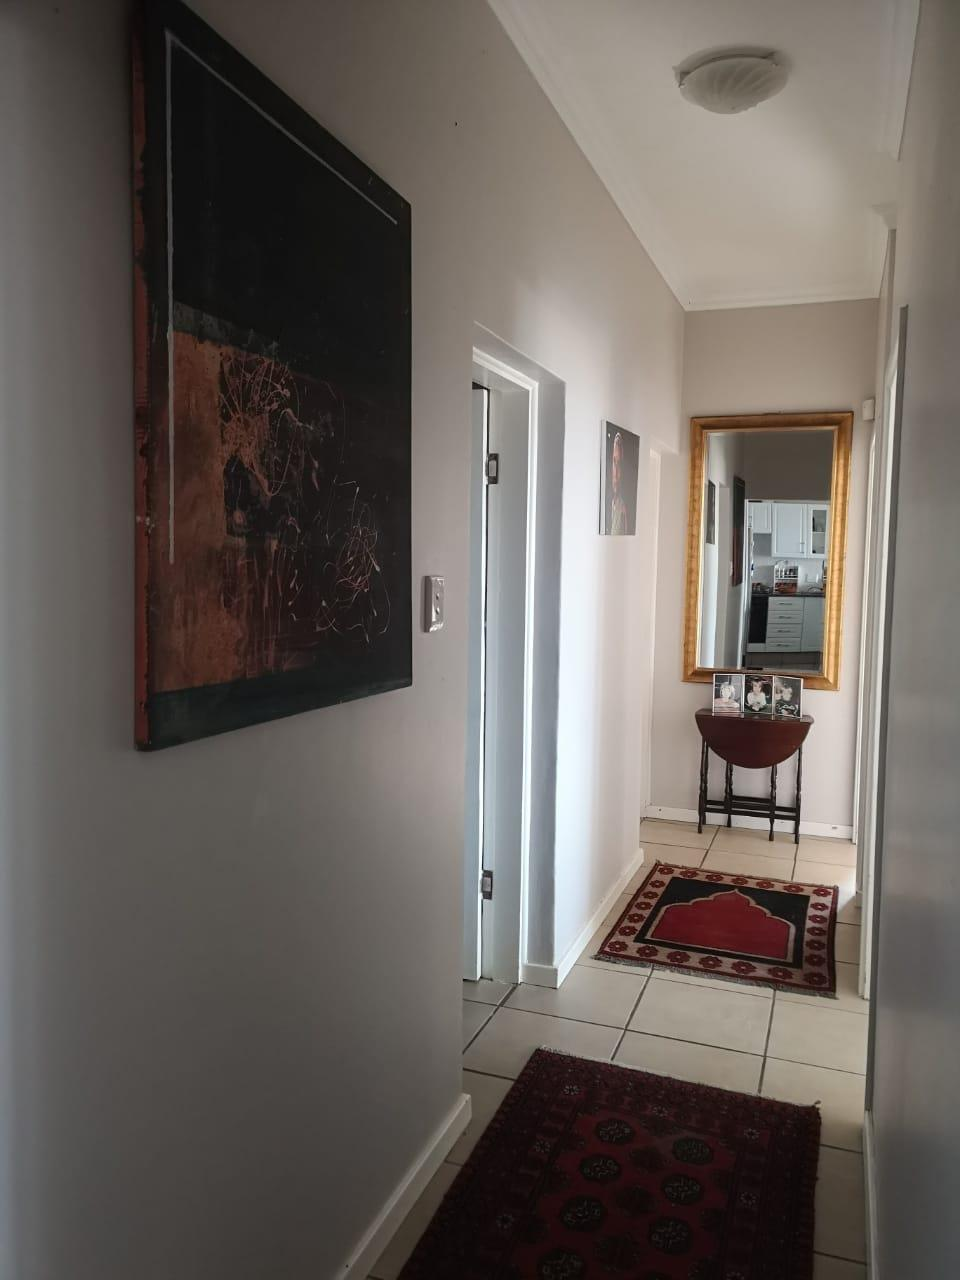 3 Bedroom Apartment / Flat For Sale in Ramsgate